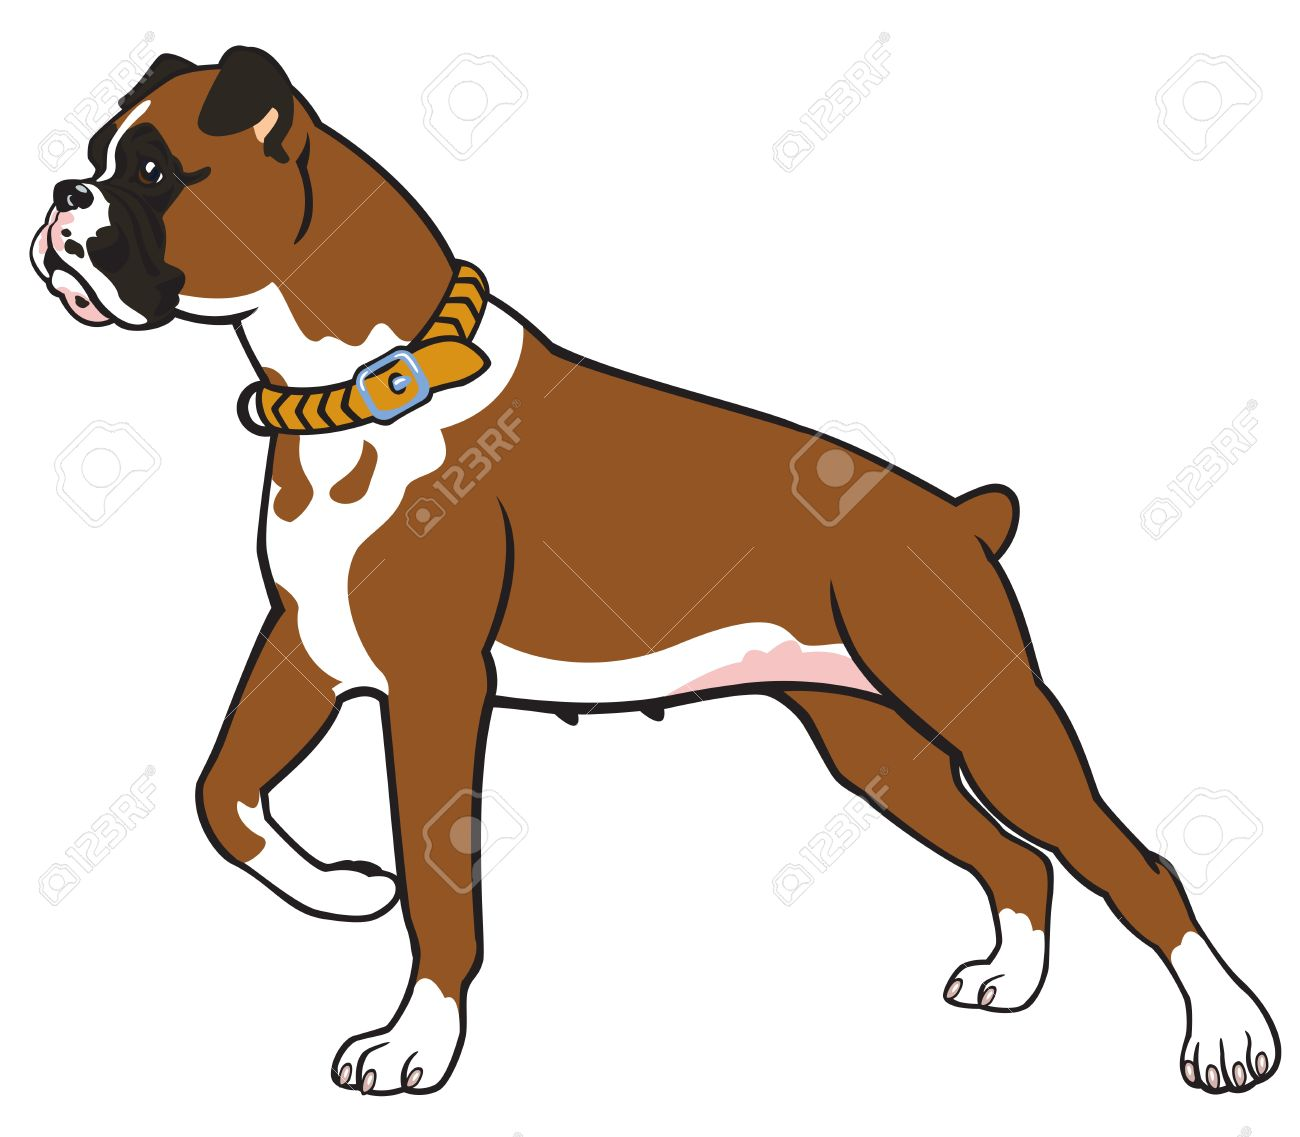 2 300 boxer dog stock vector illustration and royalty free boxer